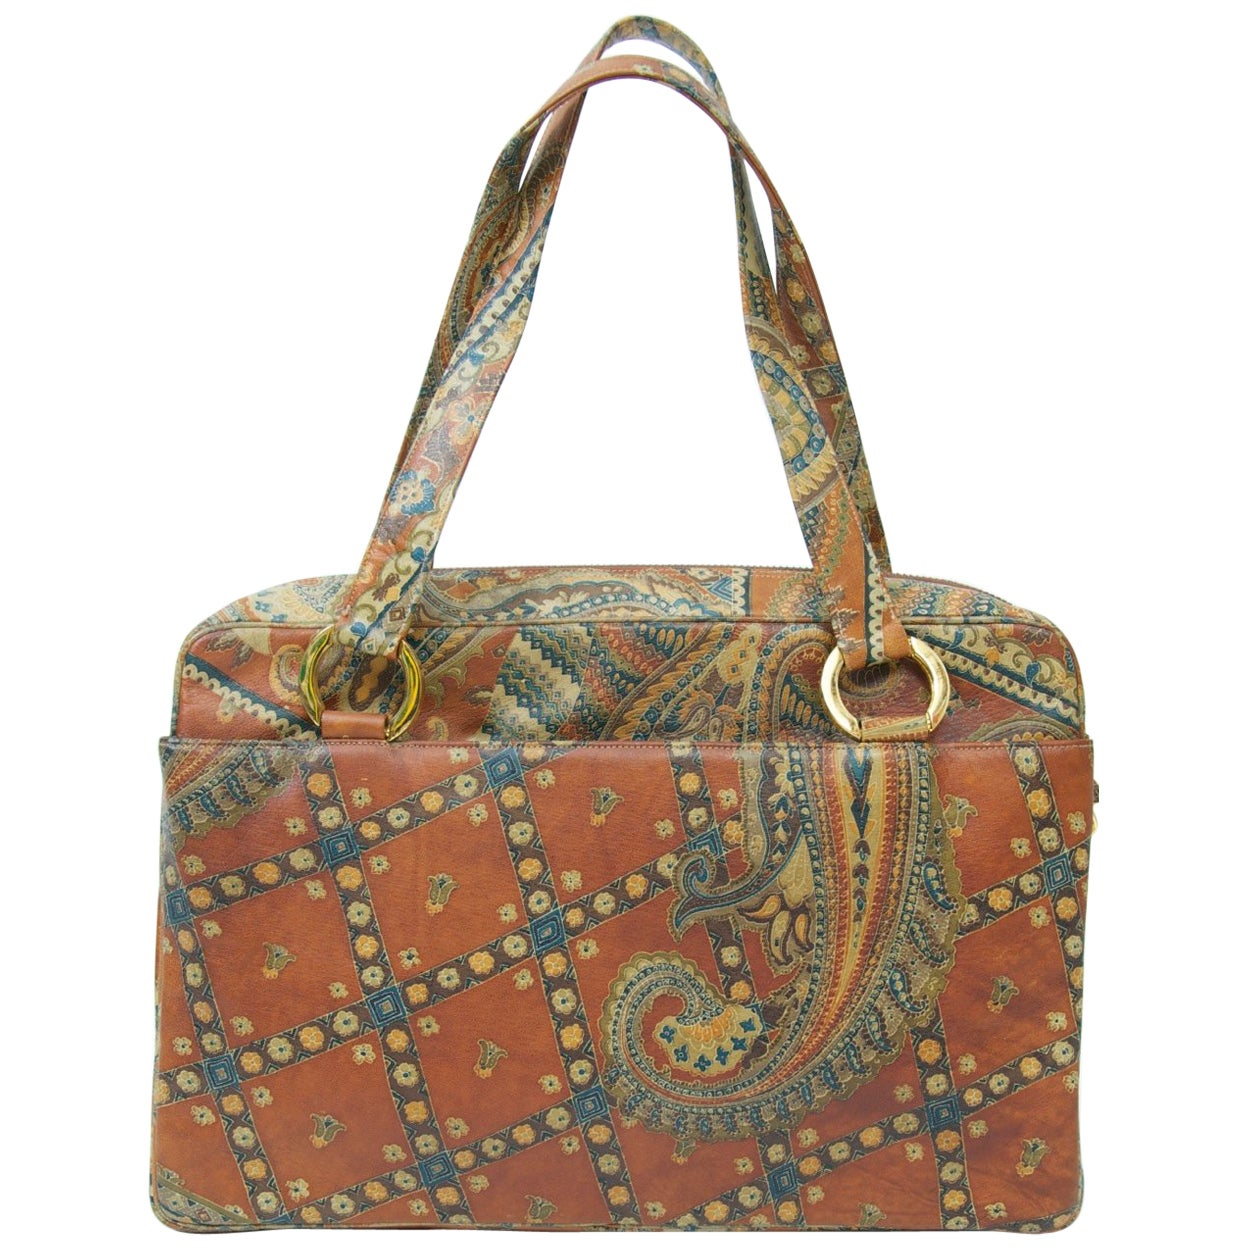 MM Odyssey Paisley Handbag and Wallet